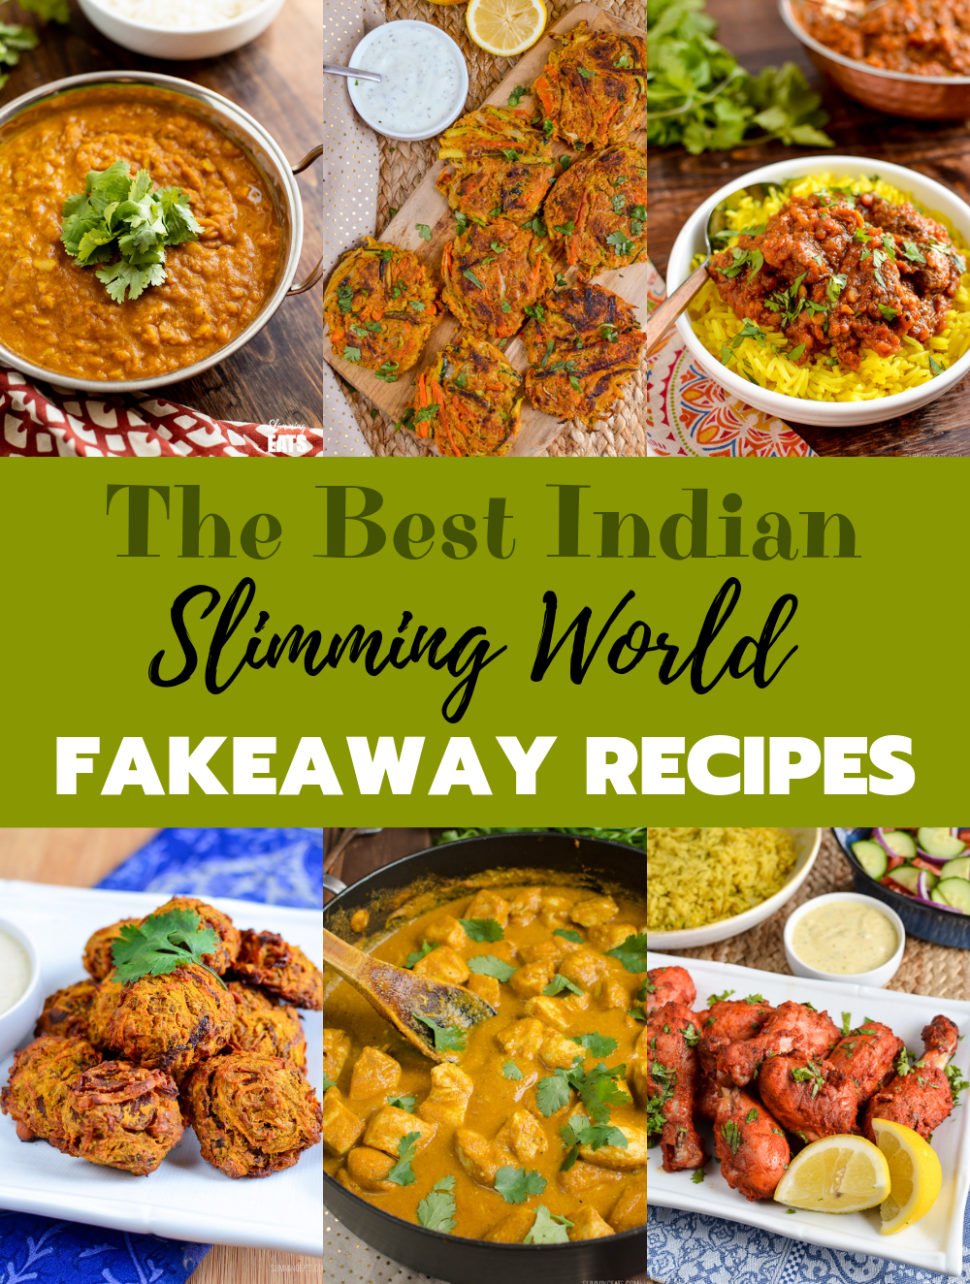 The Best Slimming World Indian Fakeaway Recipes | Slimming Eats - healthy recipes slimming world